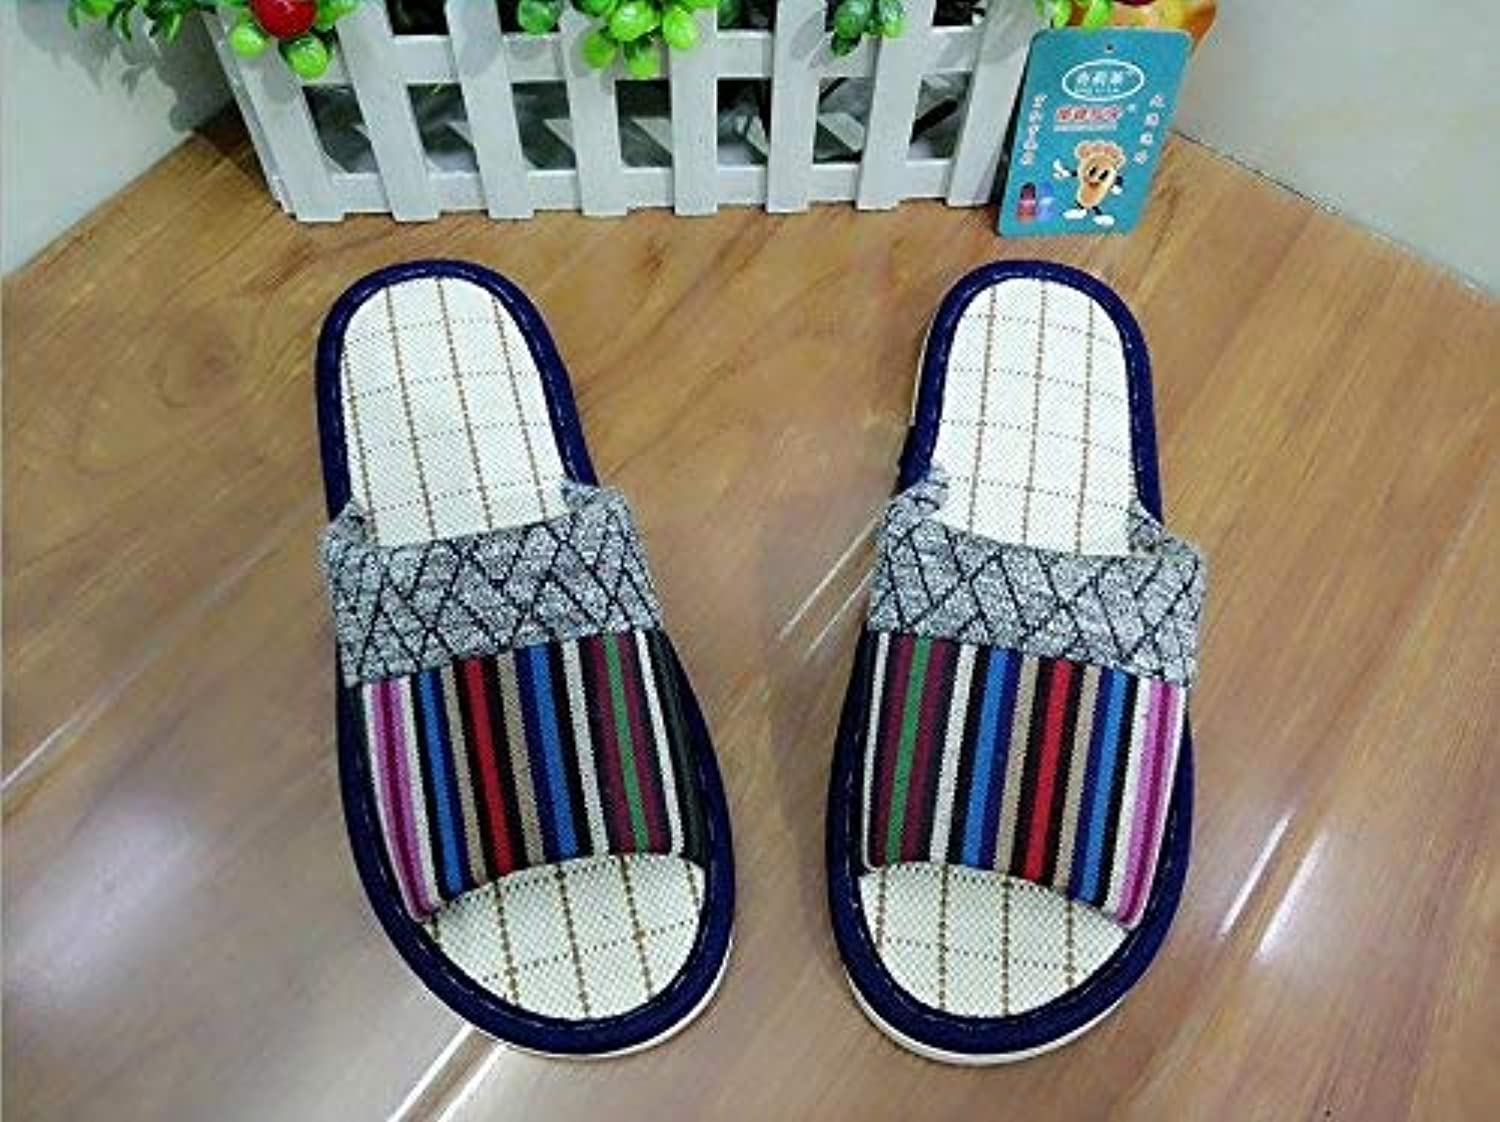 JaHGDU Men Fashion Leisure Home shoes Interior Non Slip Slippers Cotton shoes Keep Warm Casual shoes for Men bluee Red